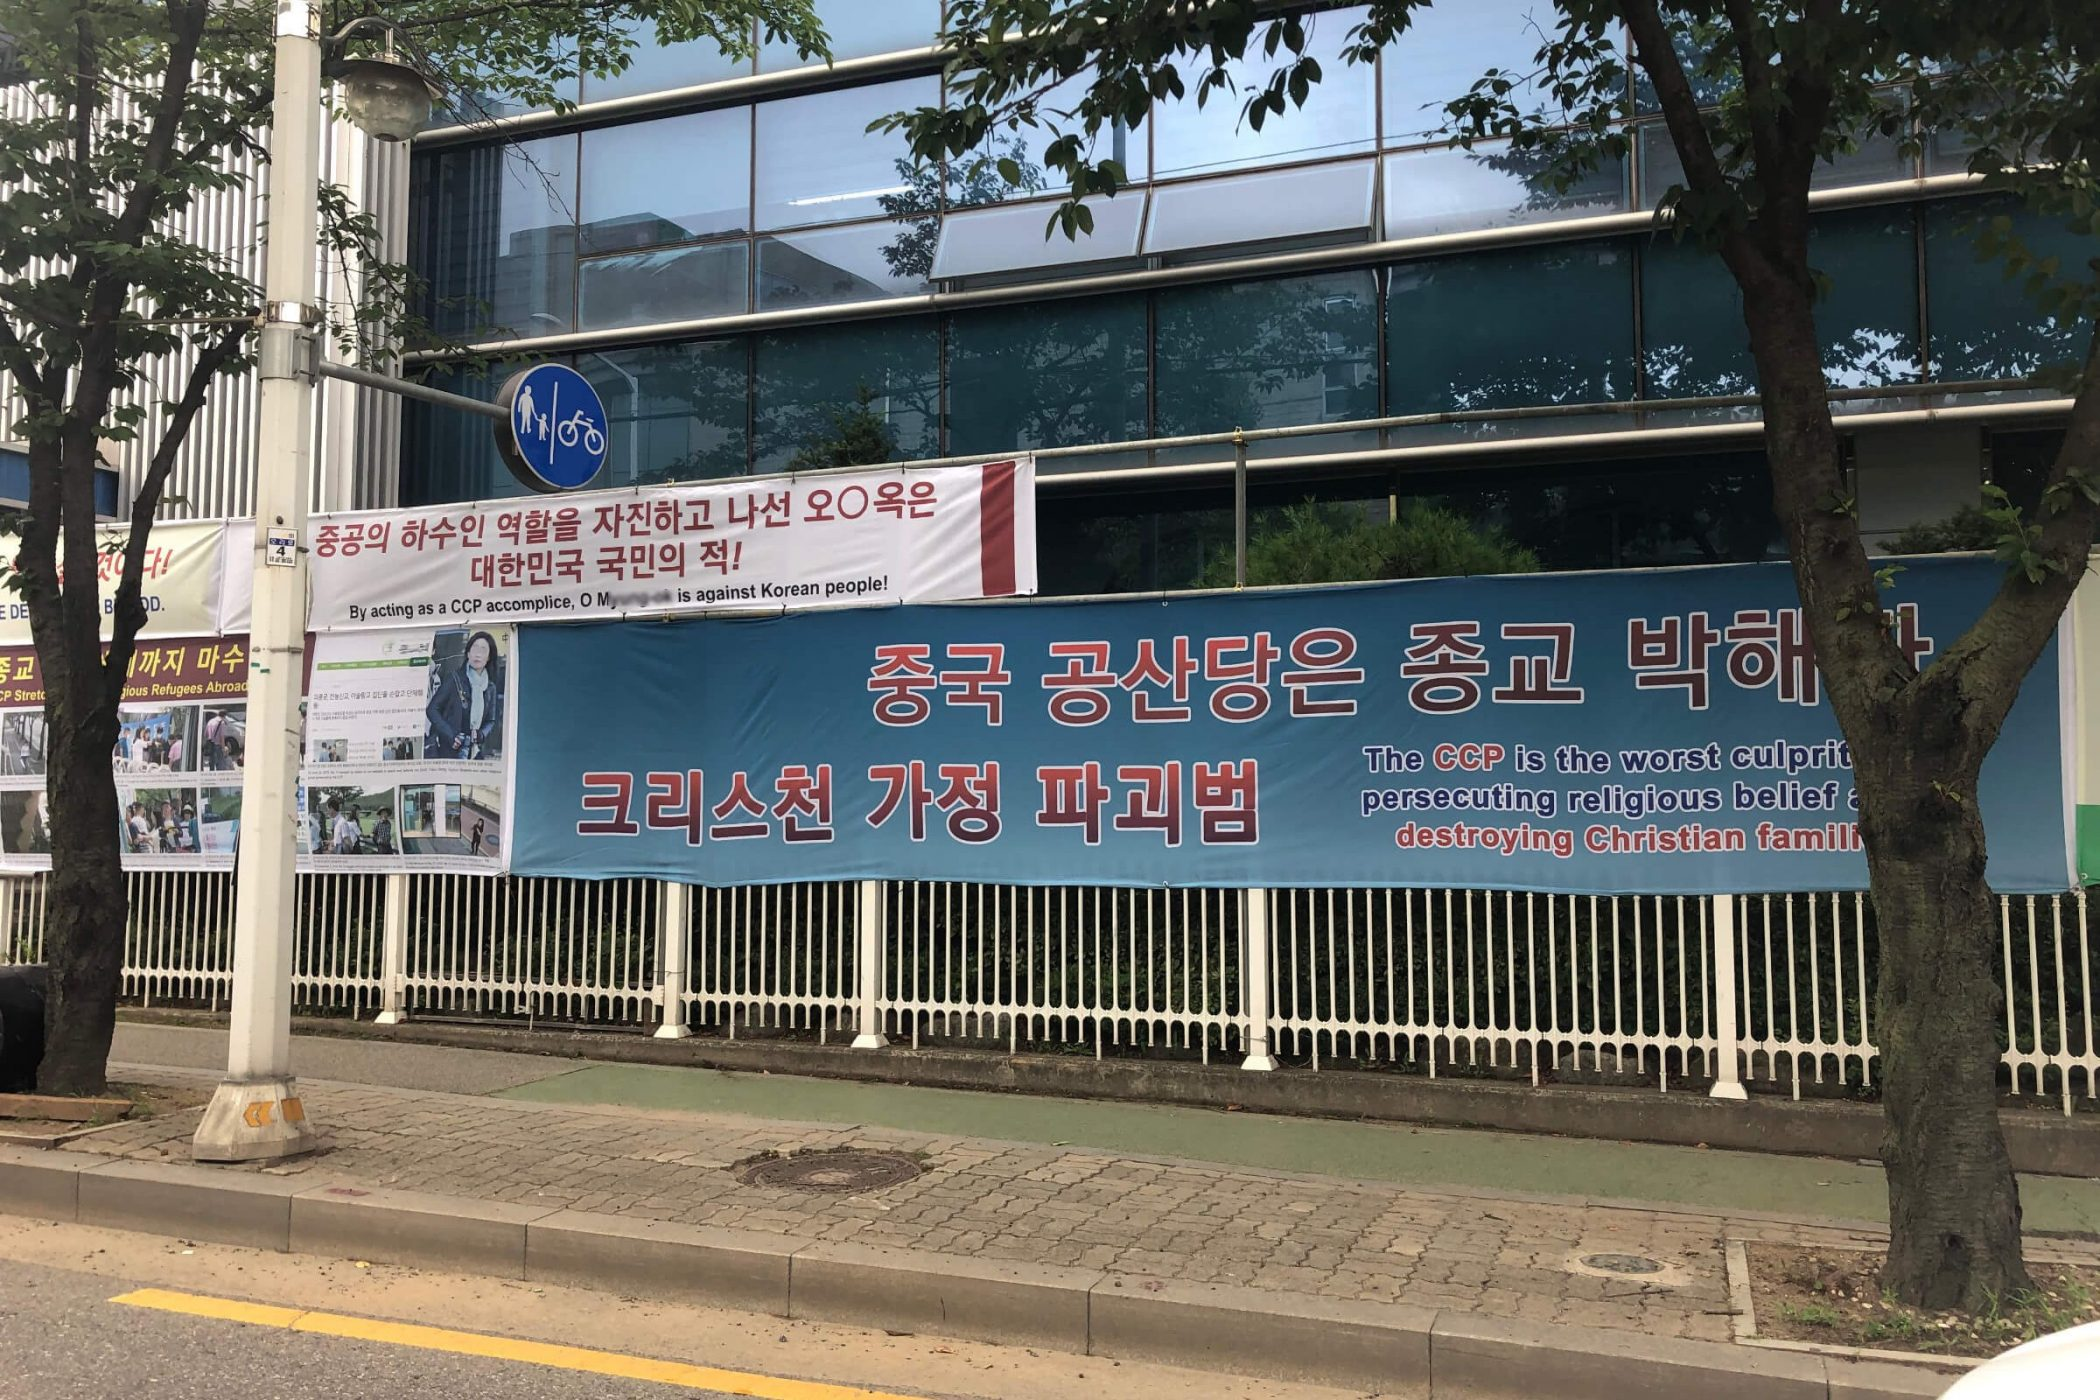 By acting as a CCP accomplice, O Myung-ok is against Korean people